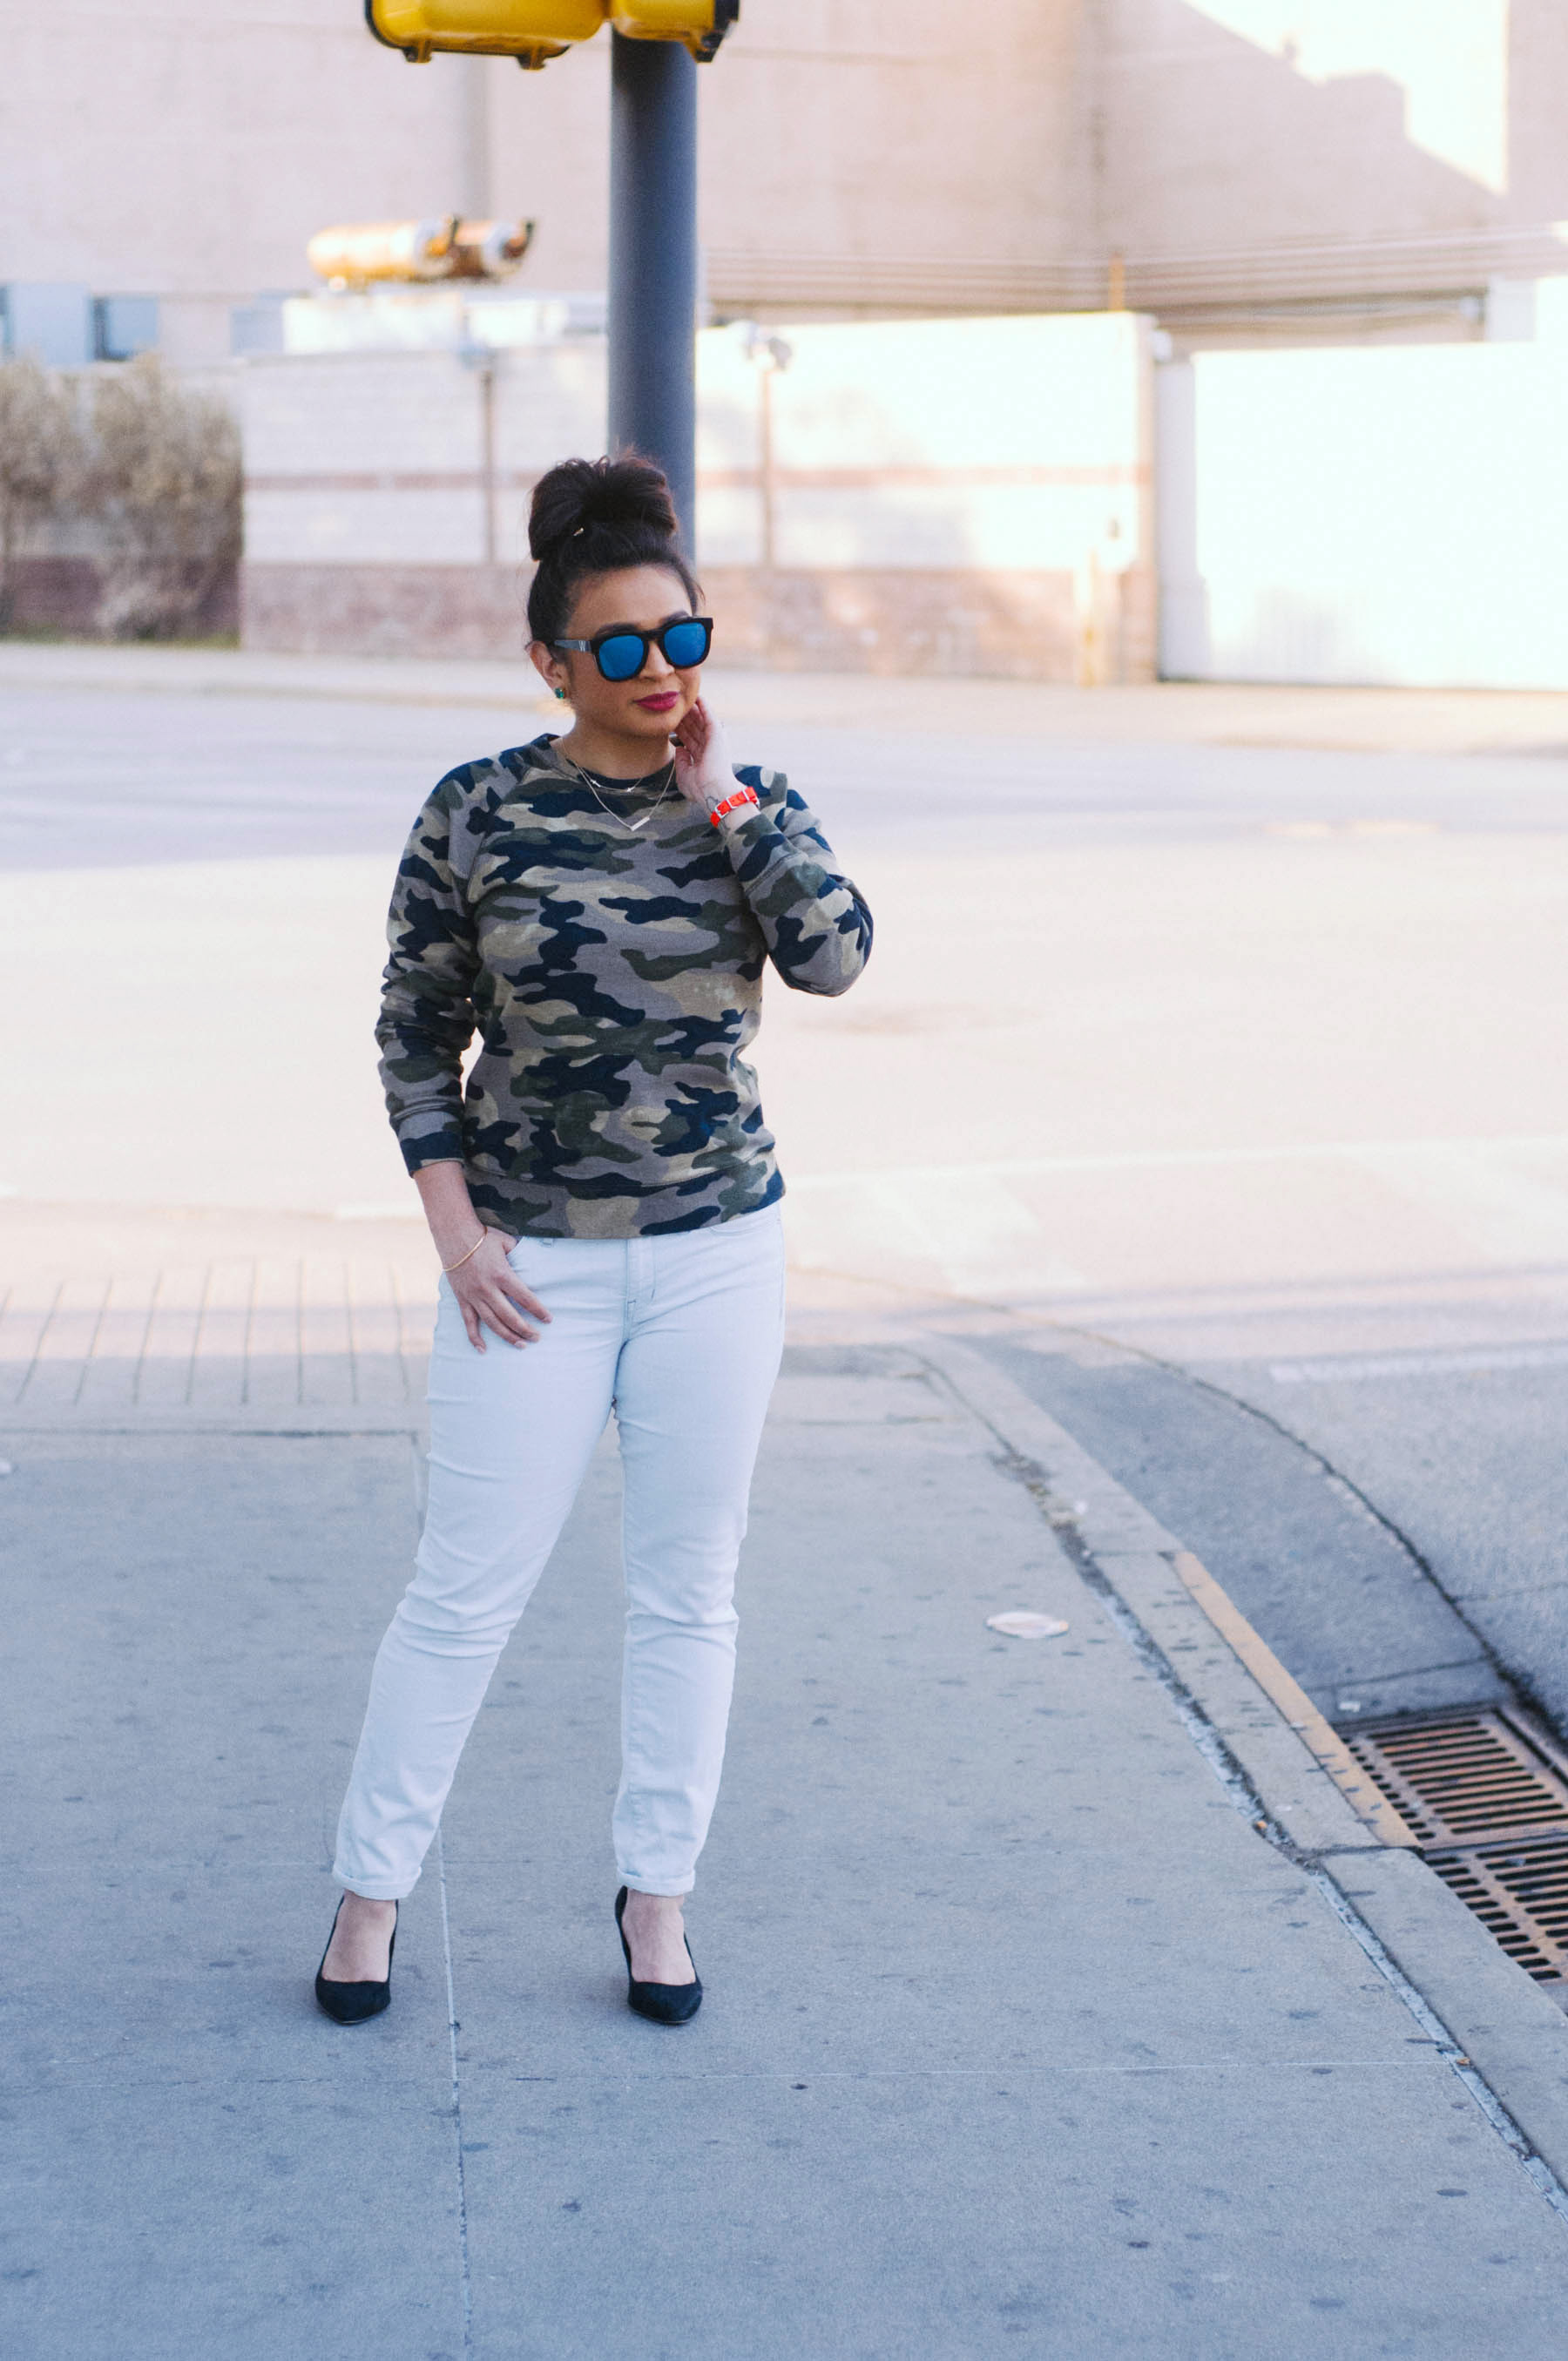 Sweatshirt:  J.Crew  | Jeans:  Madewell  | Shoes: H&M (similar  here ) | Sunglasses:  Wildfox  |  Watch  &  Strap : J.Crew | Earrings:  Kate Spade  | Necklaces:  Urban Outfitters | Lipstick:  Ruby Woo (MAC)